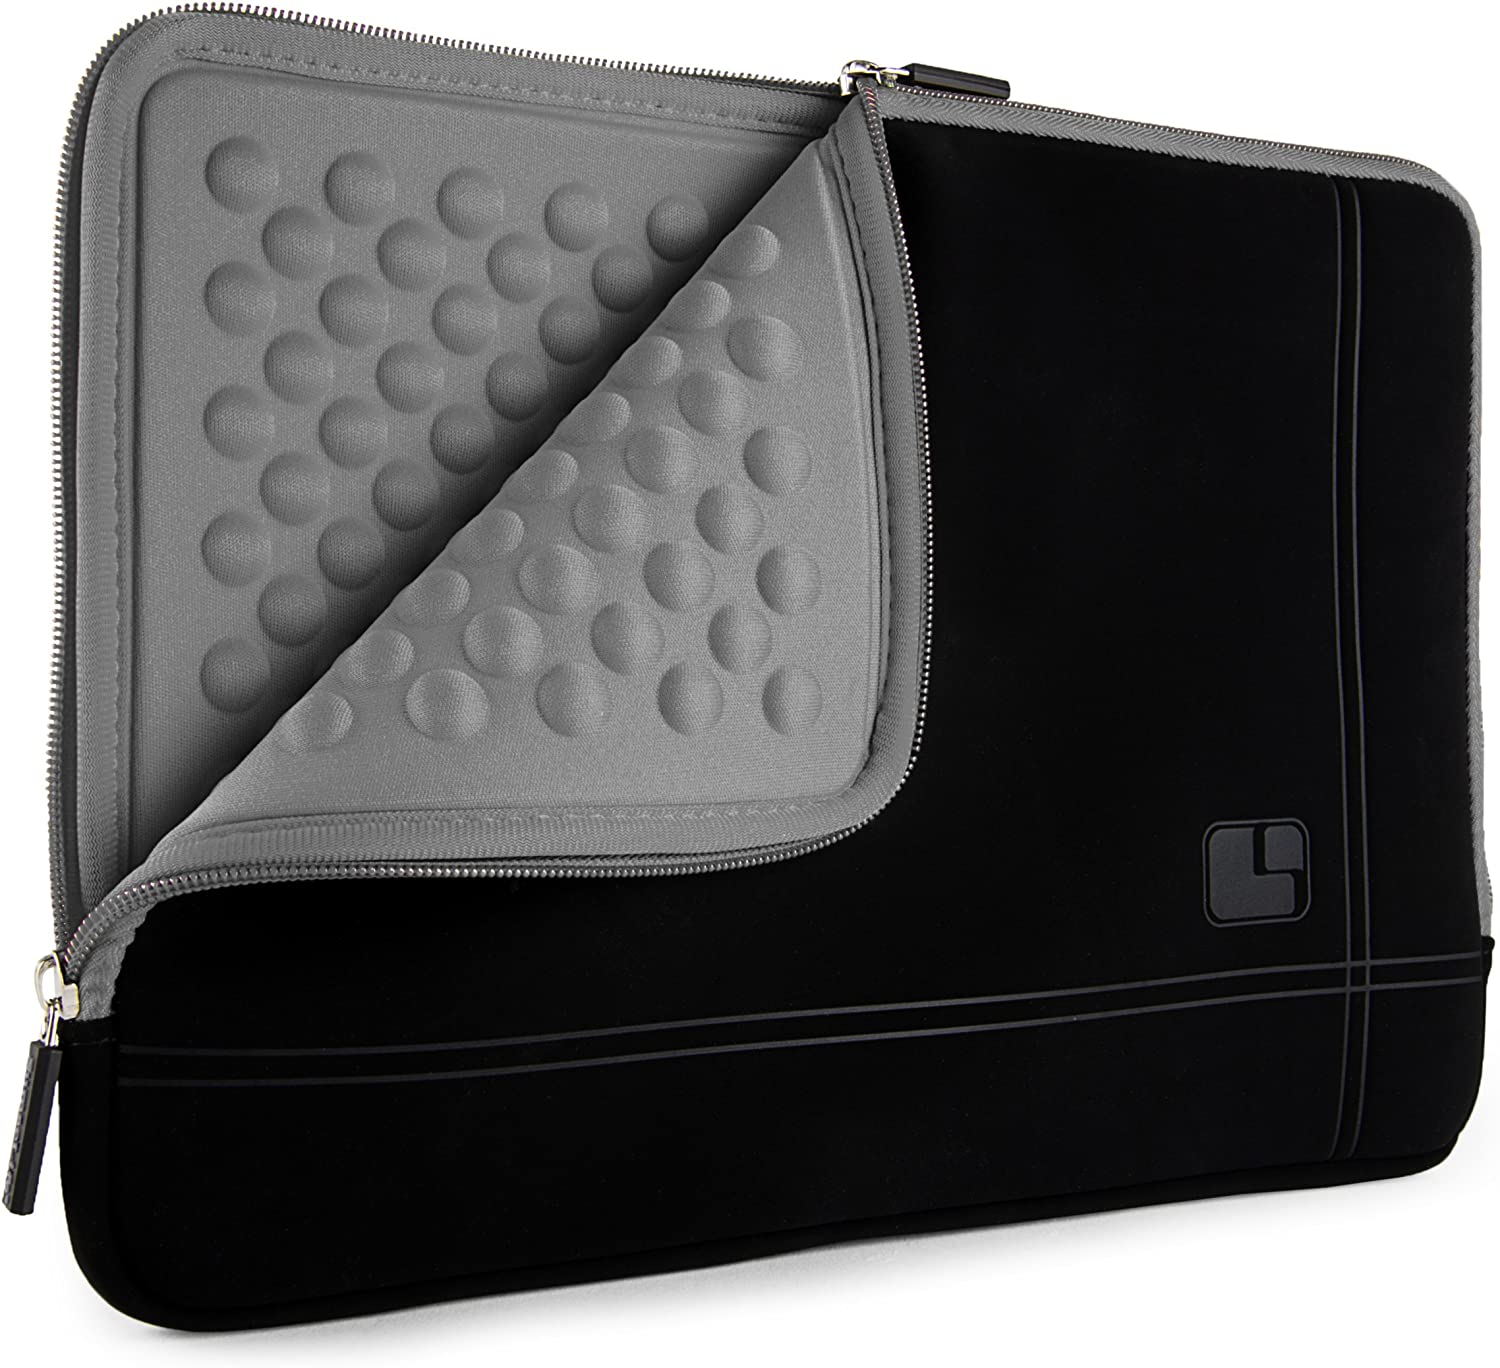 SumacLife Bubble Padded Laptop Sleeve for VAIO S11, VAIO S13, VAIO SX14, Laptops up to 12.75 inches (Black Gray)